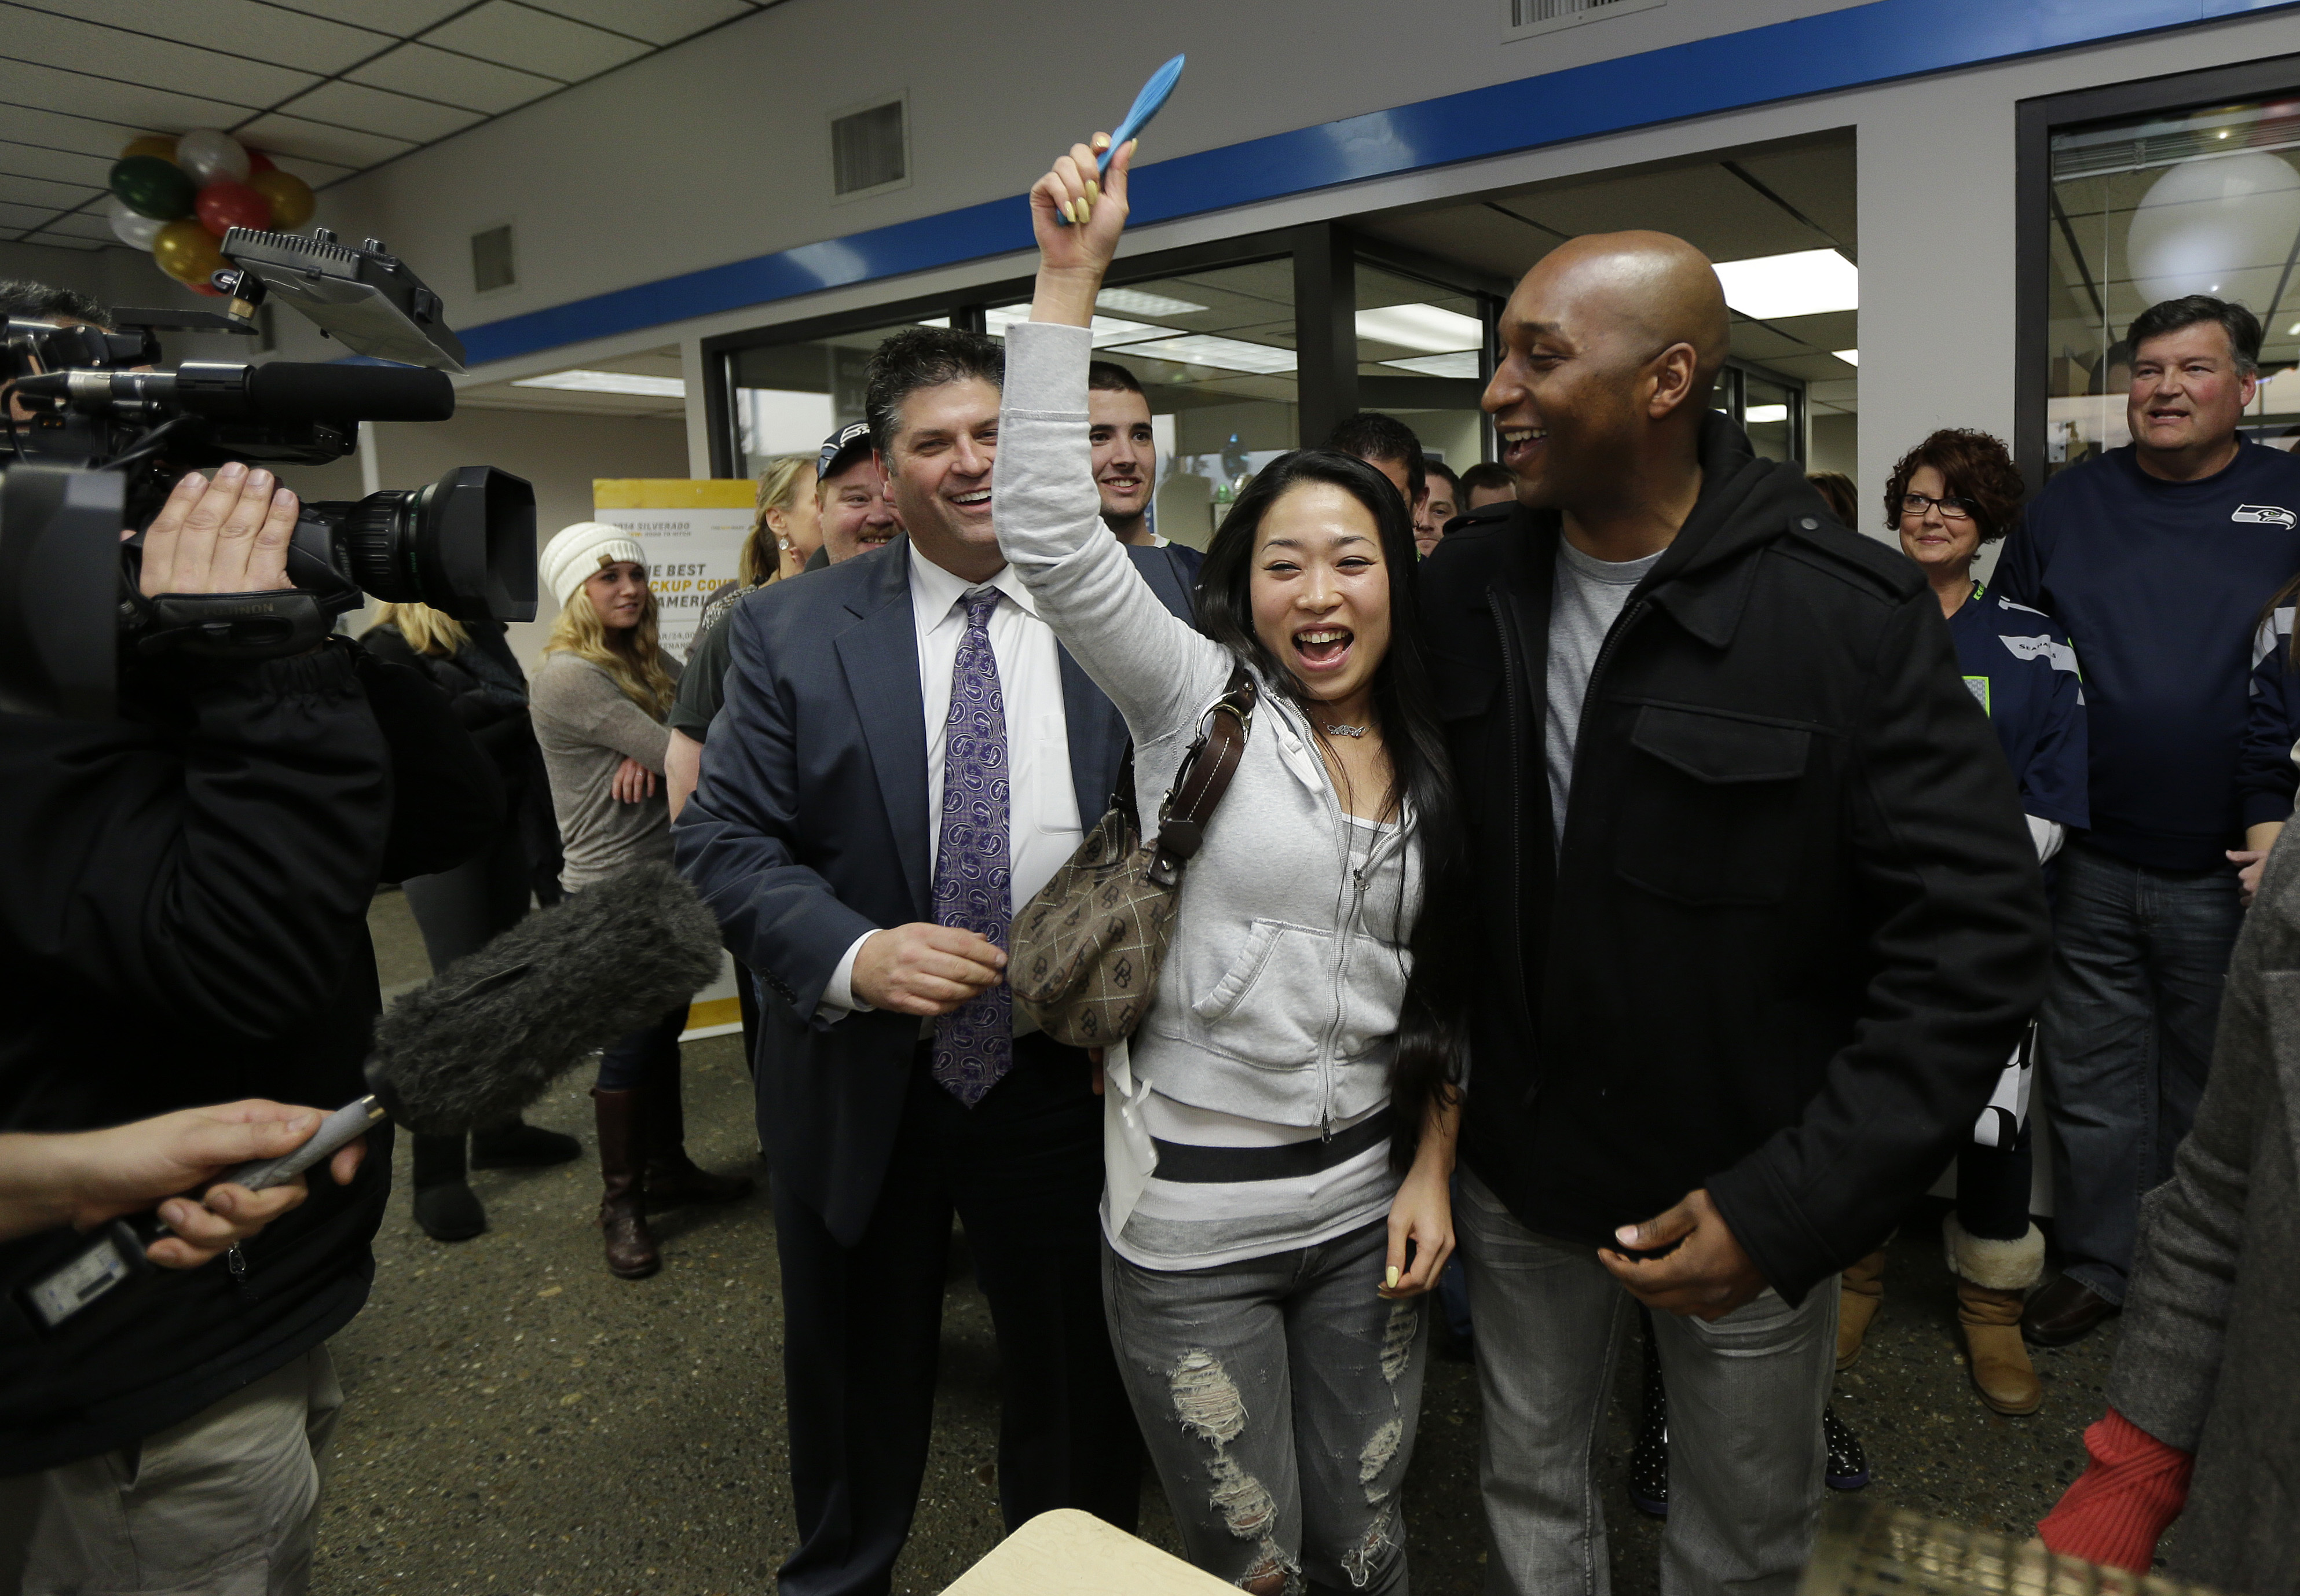 Yujin Oliver, the woman in the middle, and her husband Samonie Oliver, right, are celebrating next to Mike Gates, left, general manager of Jet Chevrolet in Federal Way, Wash., Monday, Dec. 16, 2013, after their ticket was drawn as one of 12 $35,000 winners in a dealership-sponsored raffle held only if the Seattle Seahawks shut out the New York Giants in last Sunday's NFL football game. The Seahawks defeated the Giants 23-0, and the winners drawn Monday will soon be receiving checks from the insurance policy purchased by the dealership to fund the drawing. (AP Photo/Ted S. Warren)